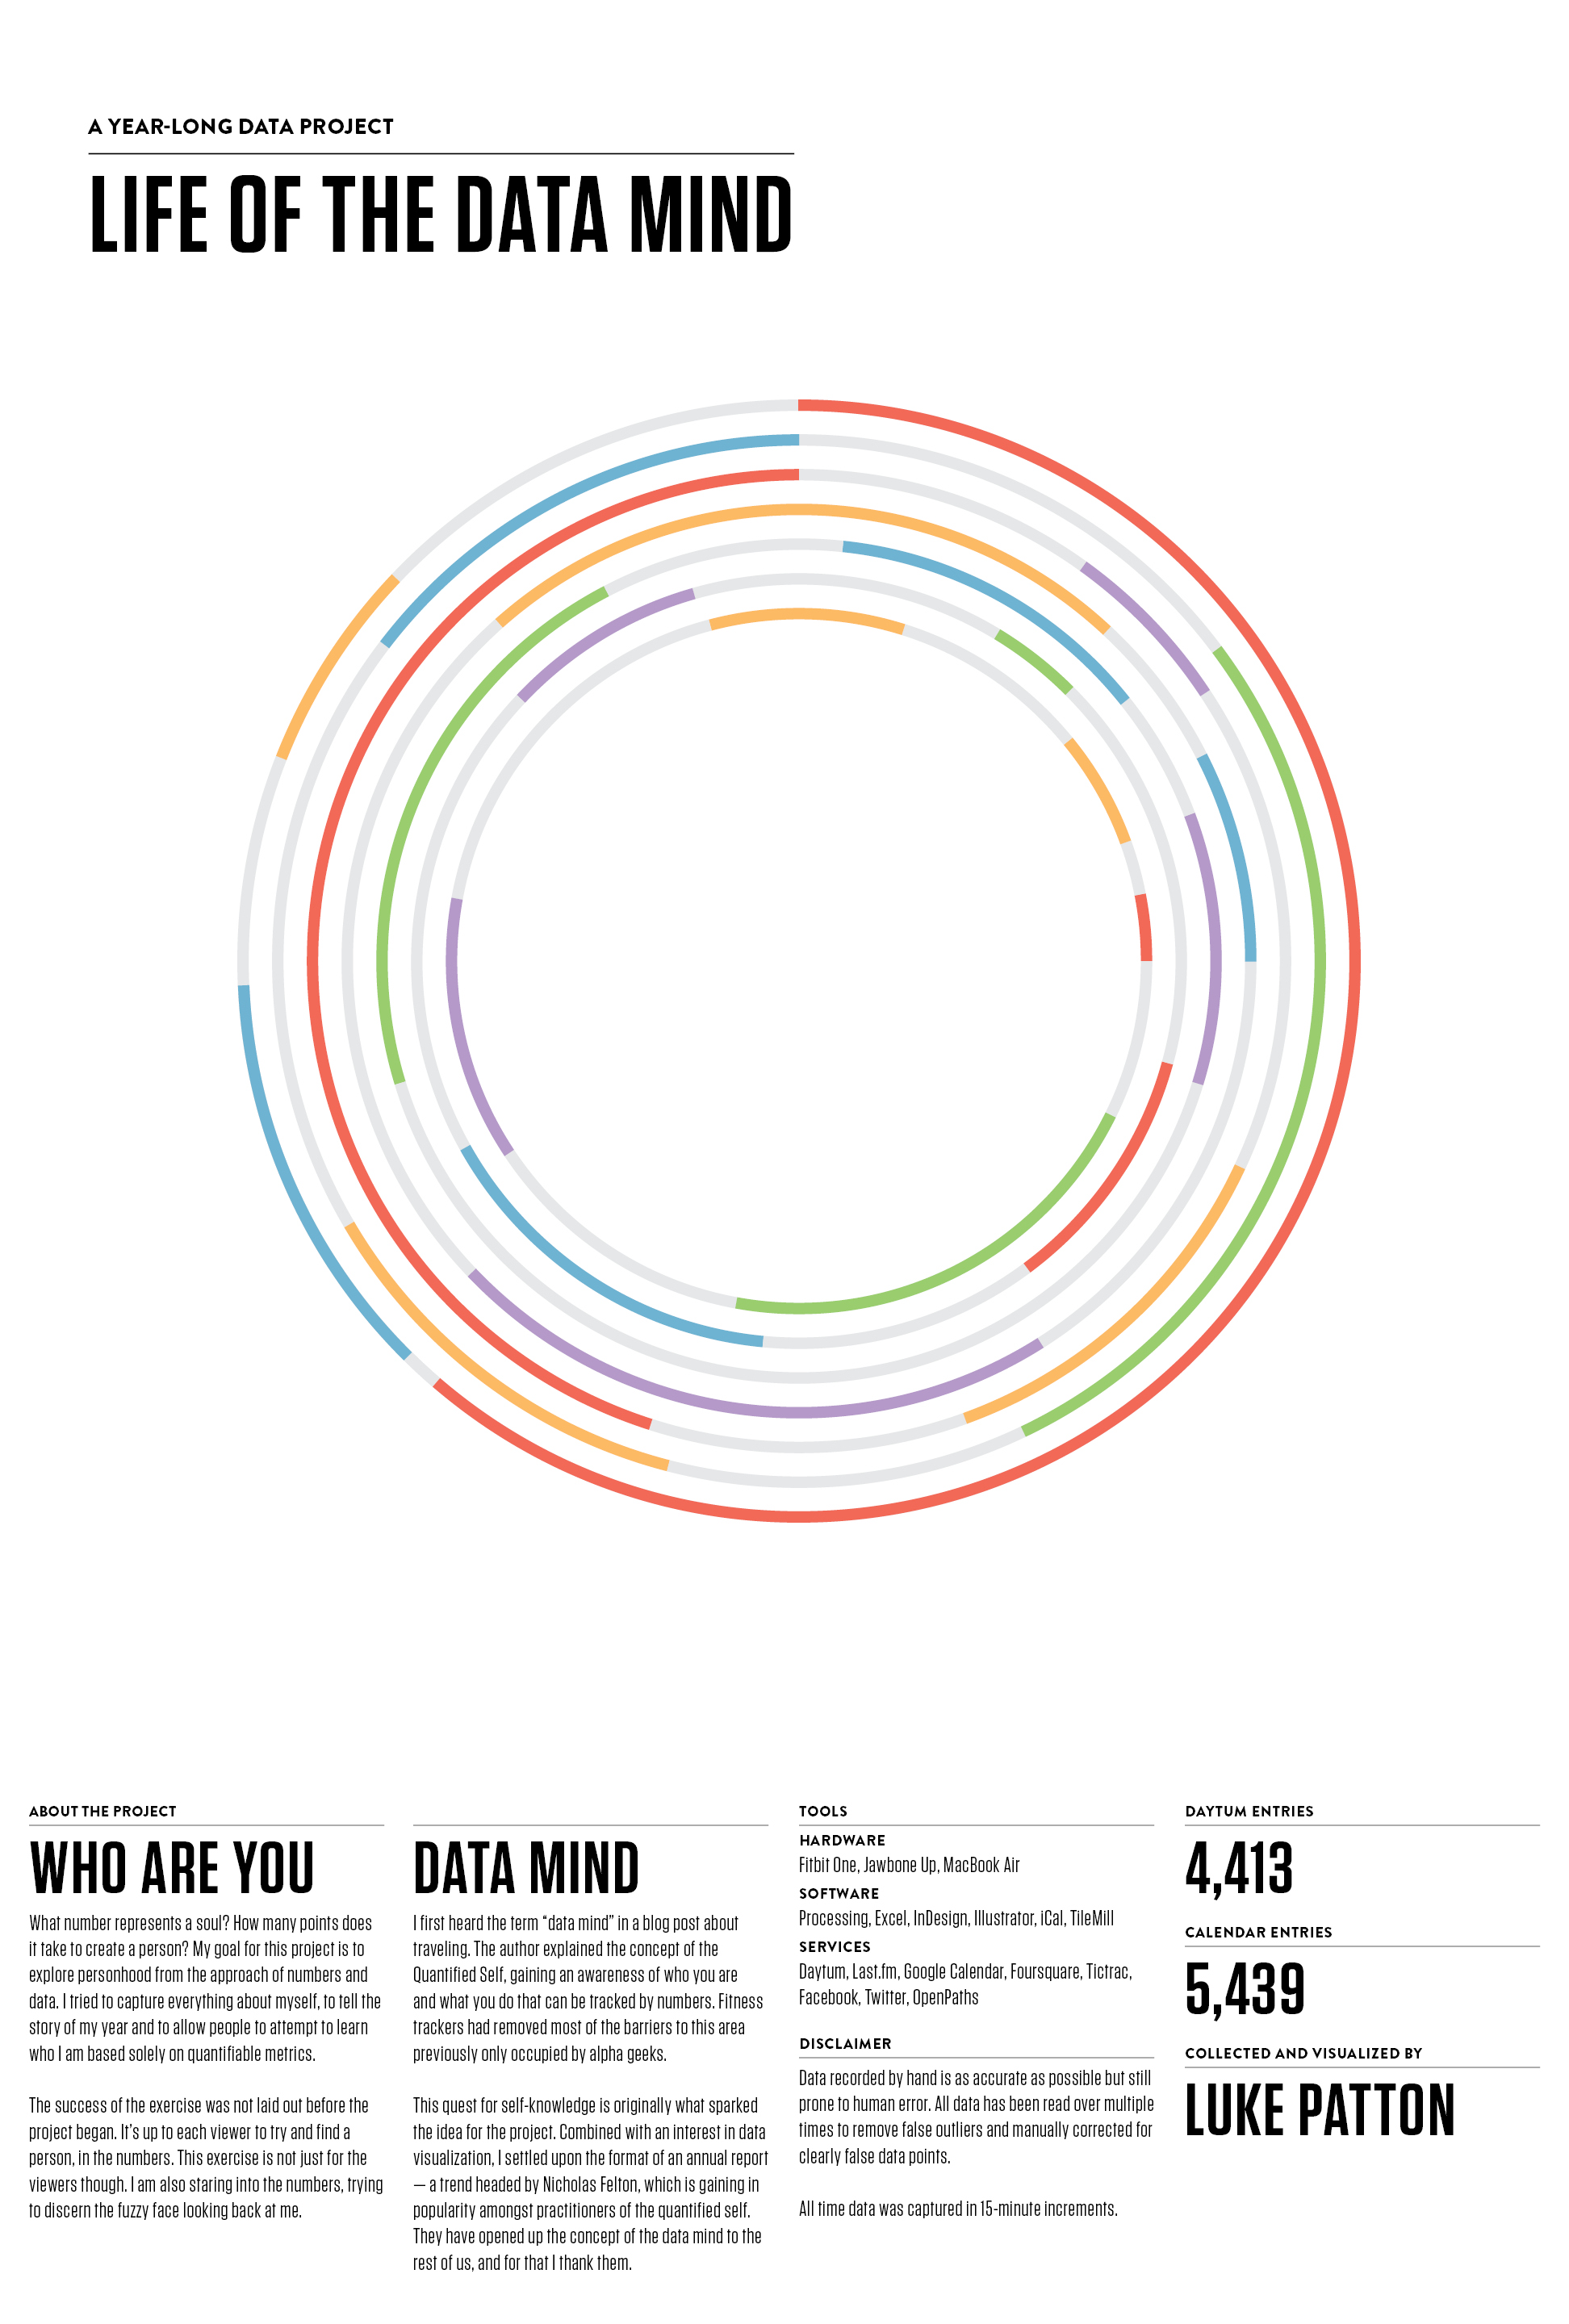 The cover poster for the Life of the Data Mind art project